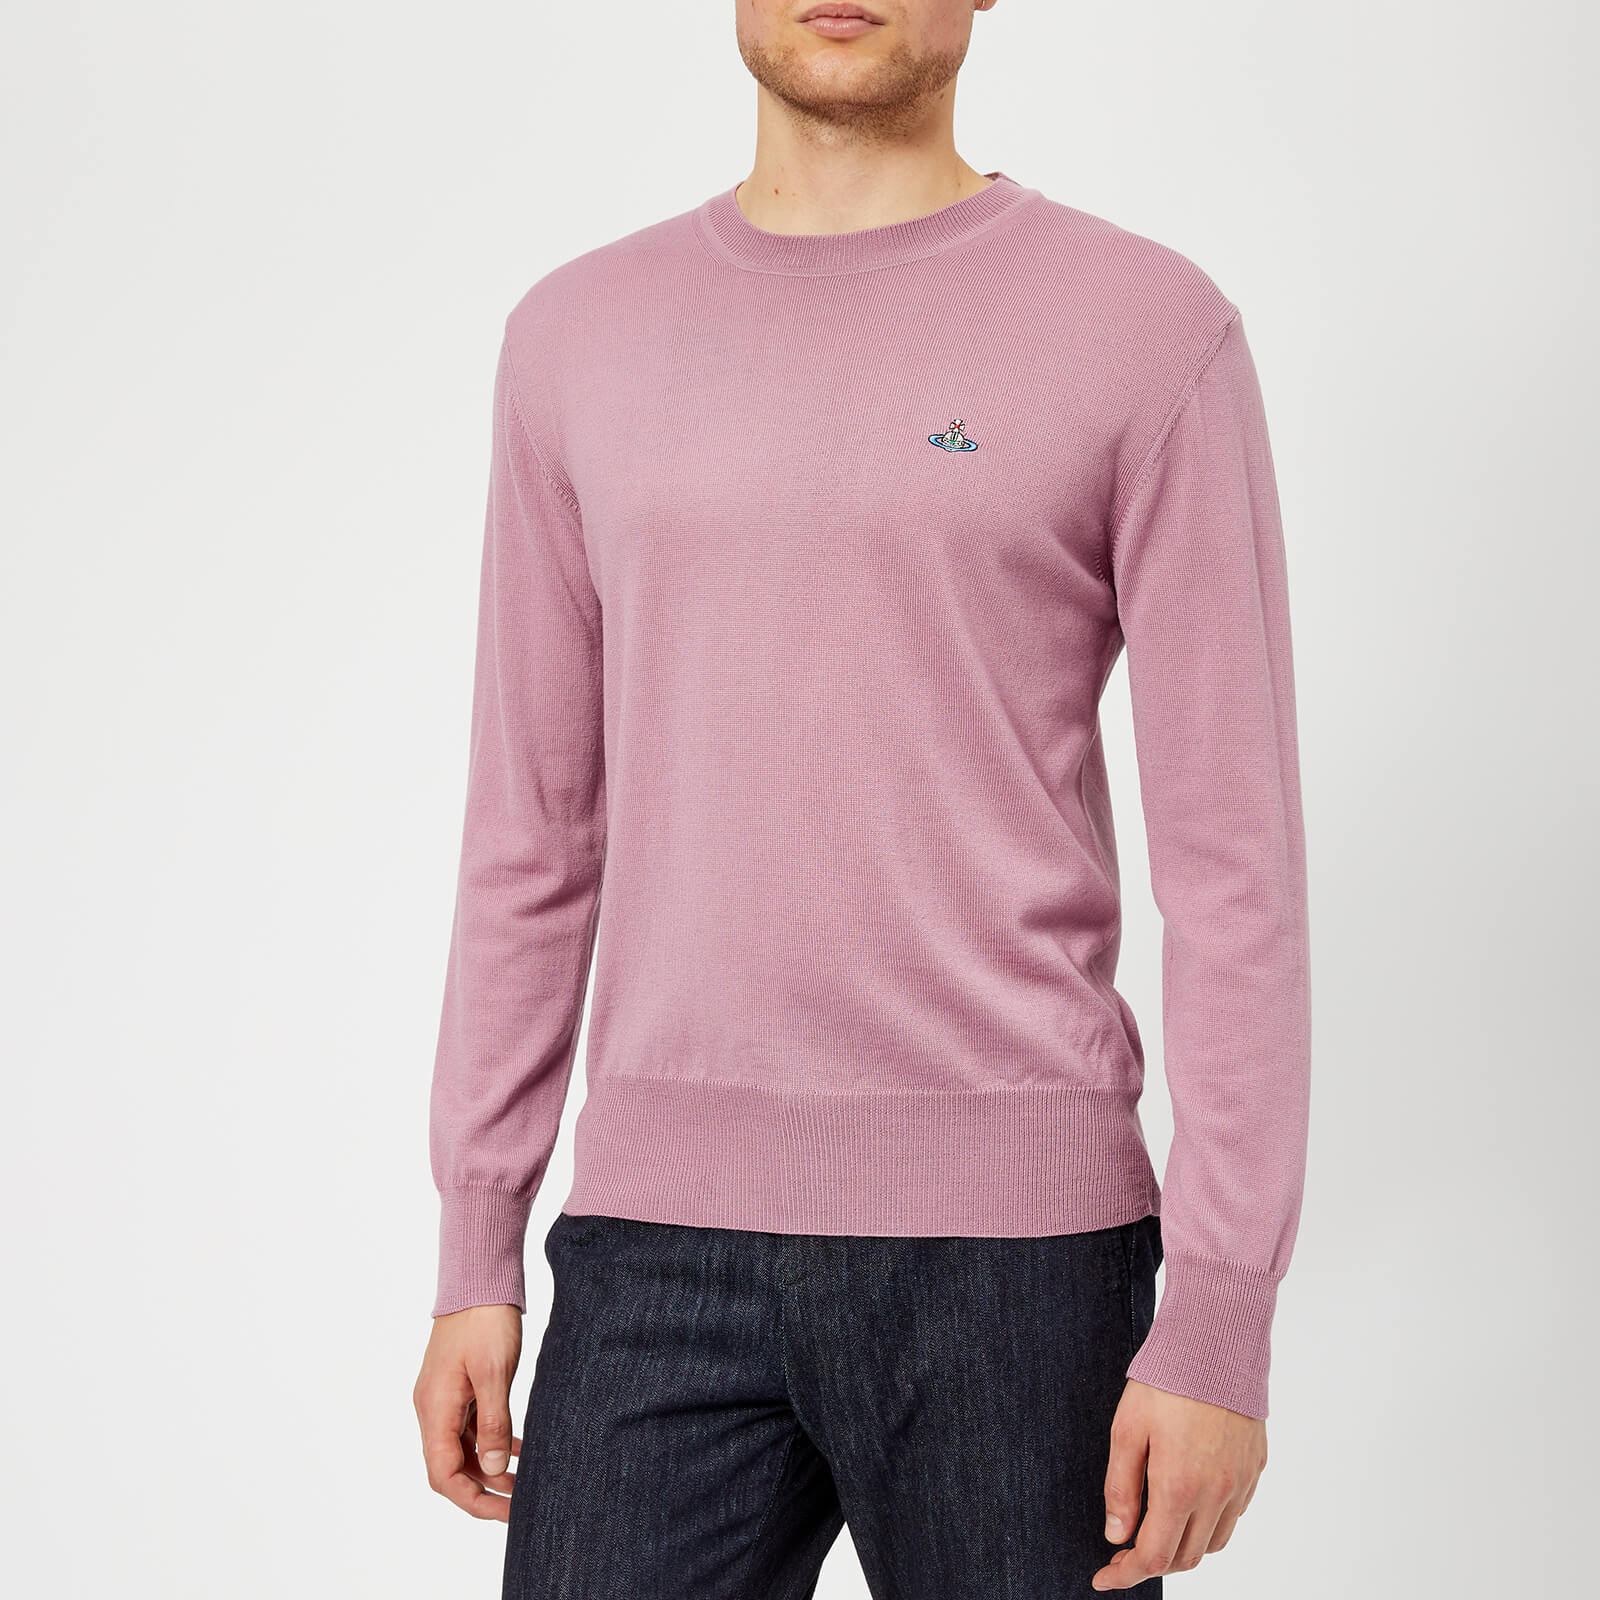 9970ad531e Vivienne Westwood Men's Classic Round Neck Knitted Jumper - Dusty Pink -  Free UK Delivery over £50